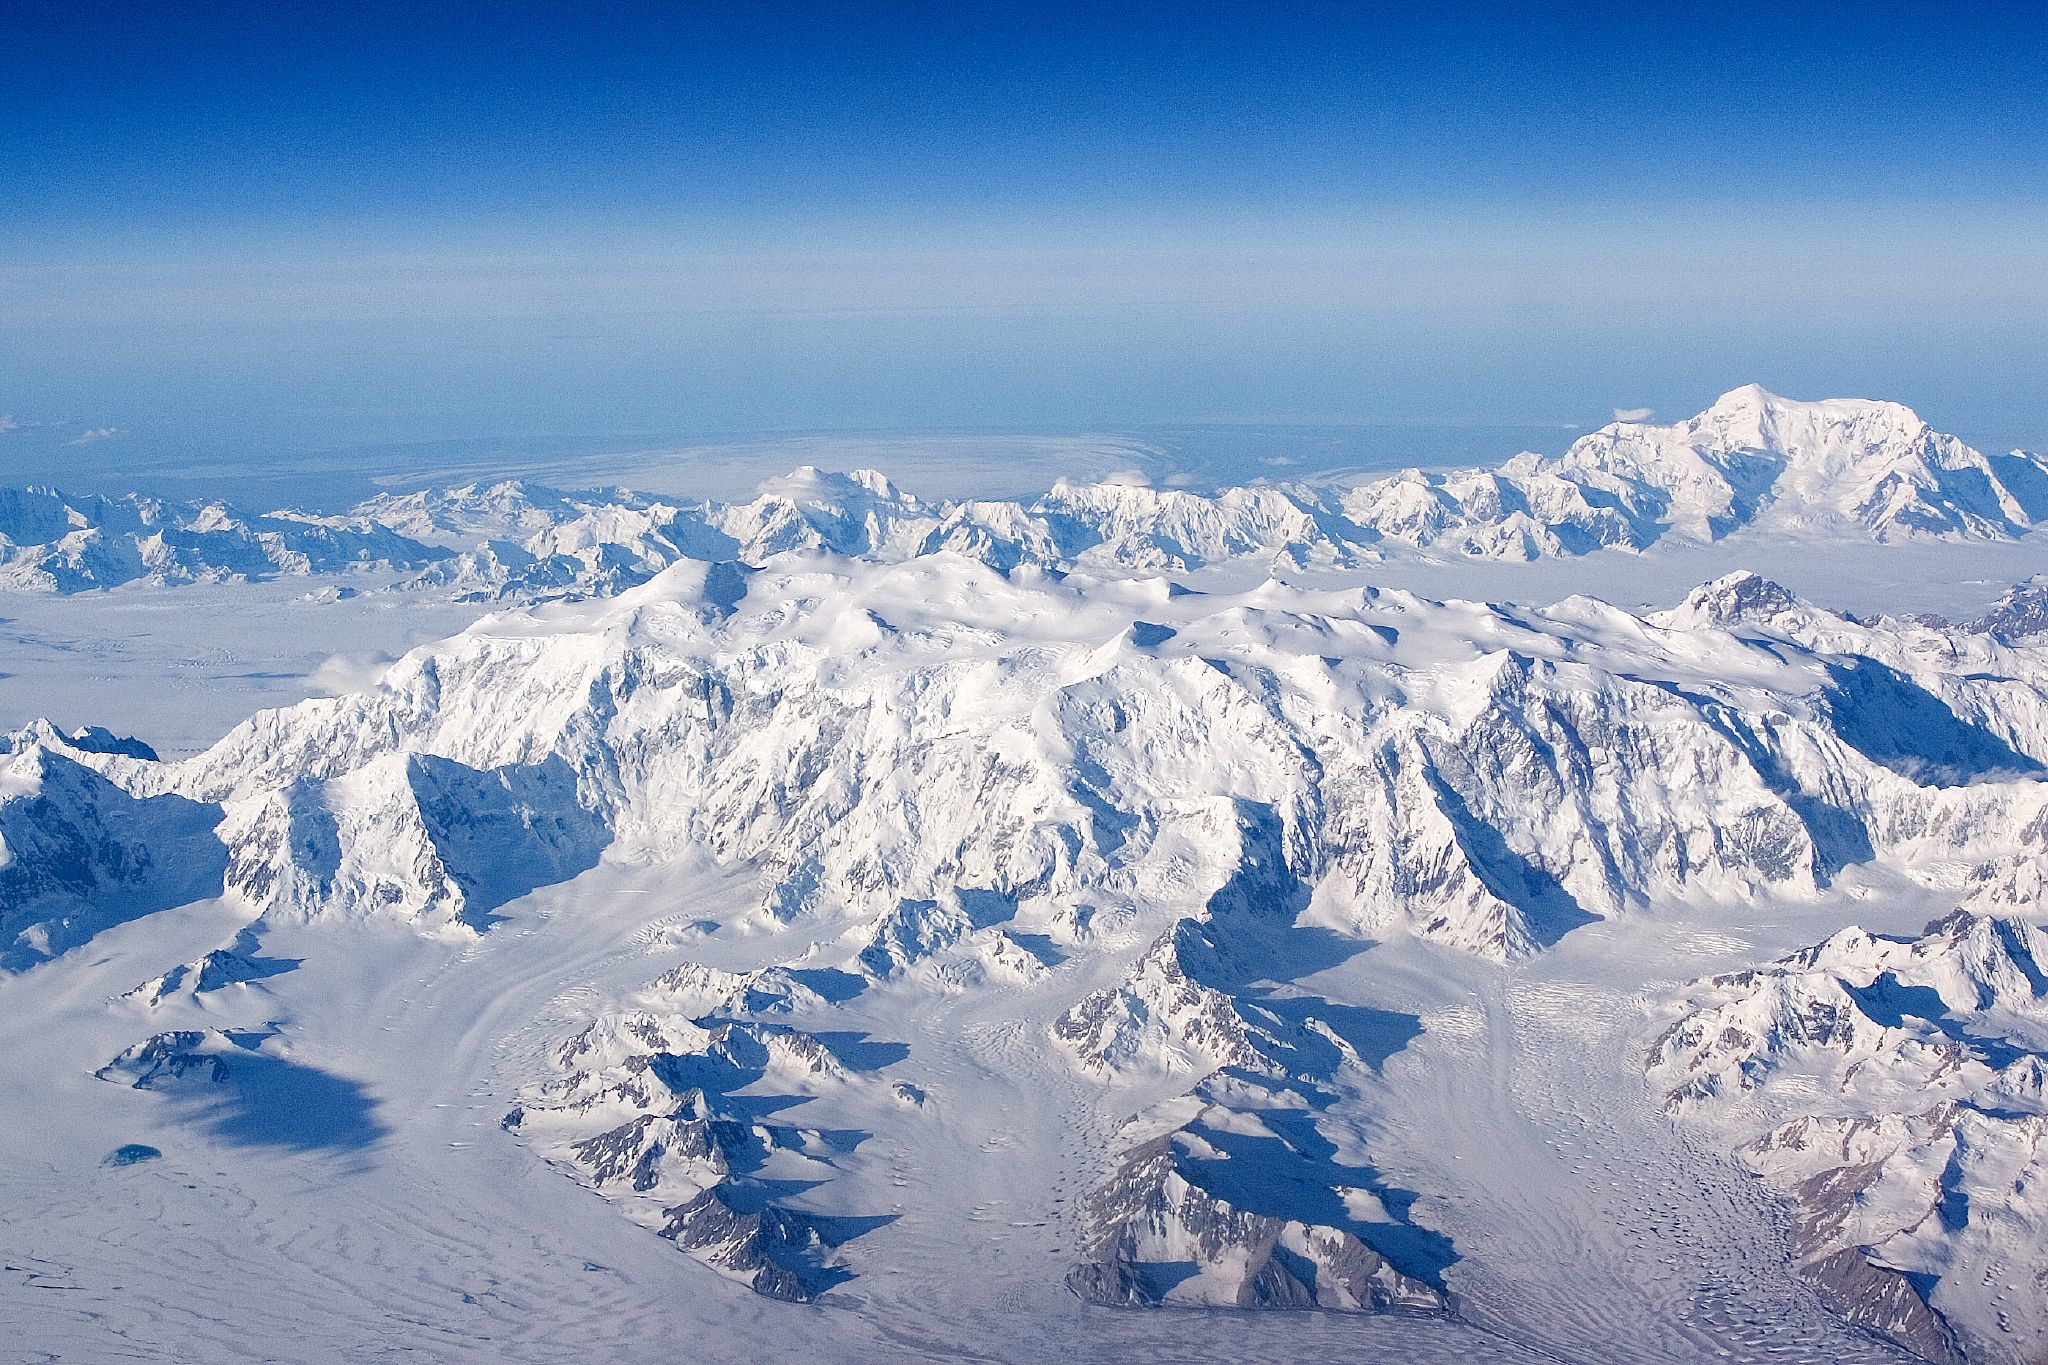 Mount St. Elias from the north